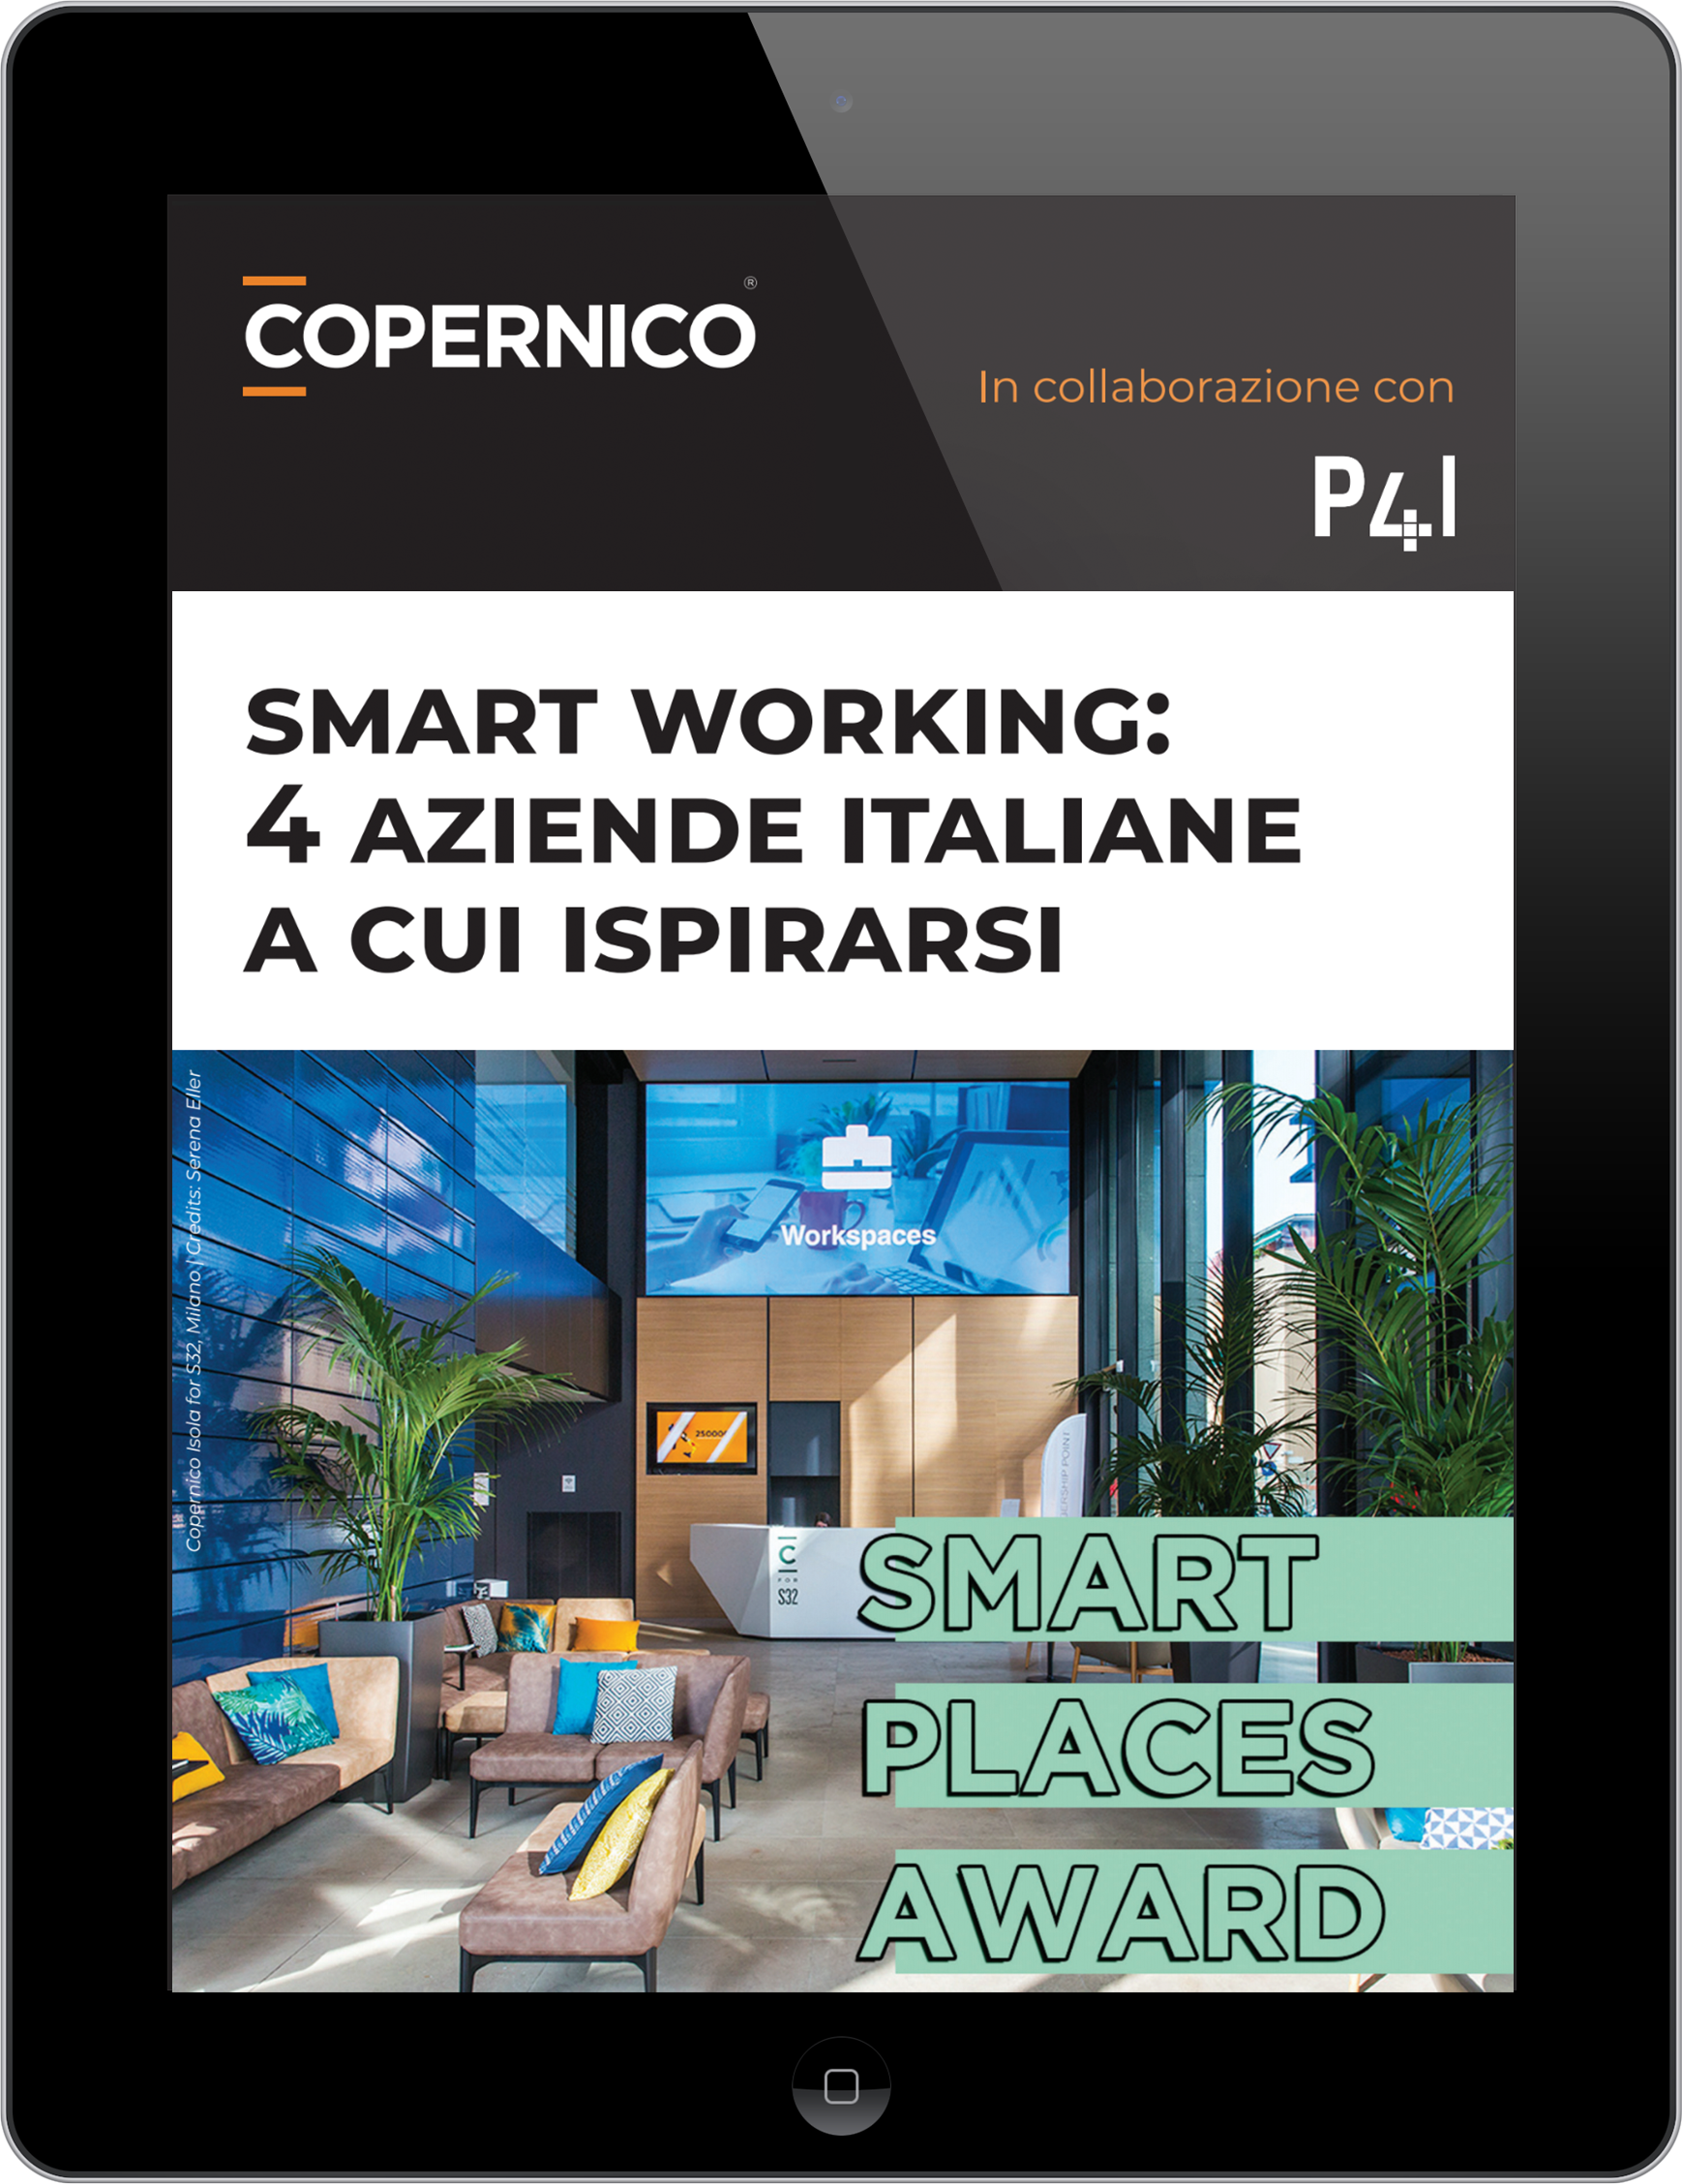 copernico smart places award